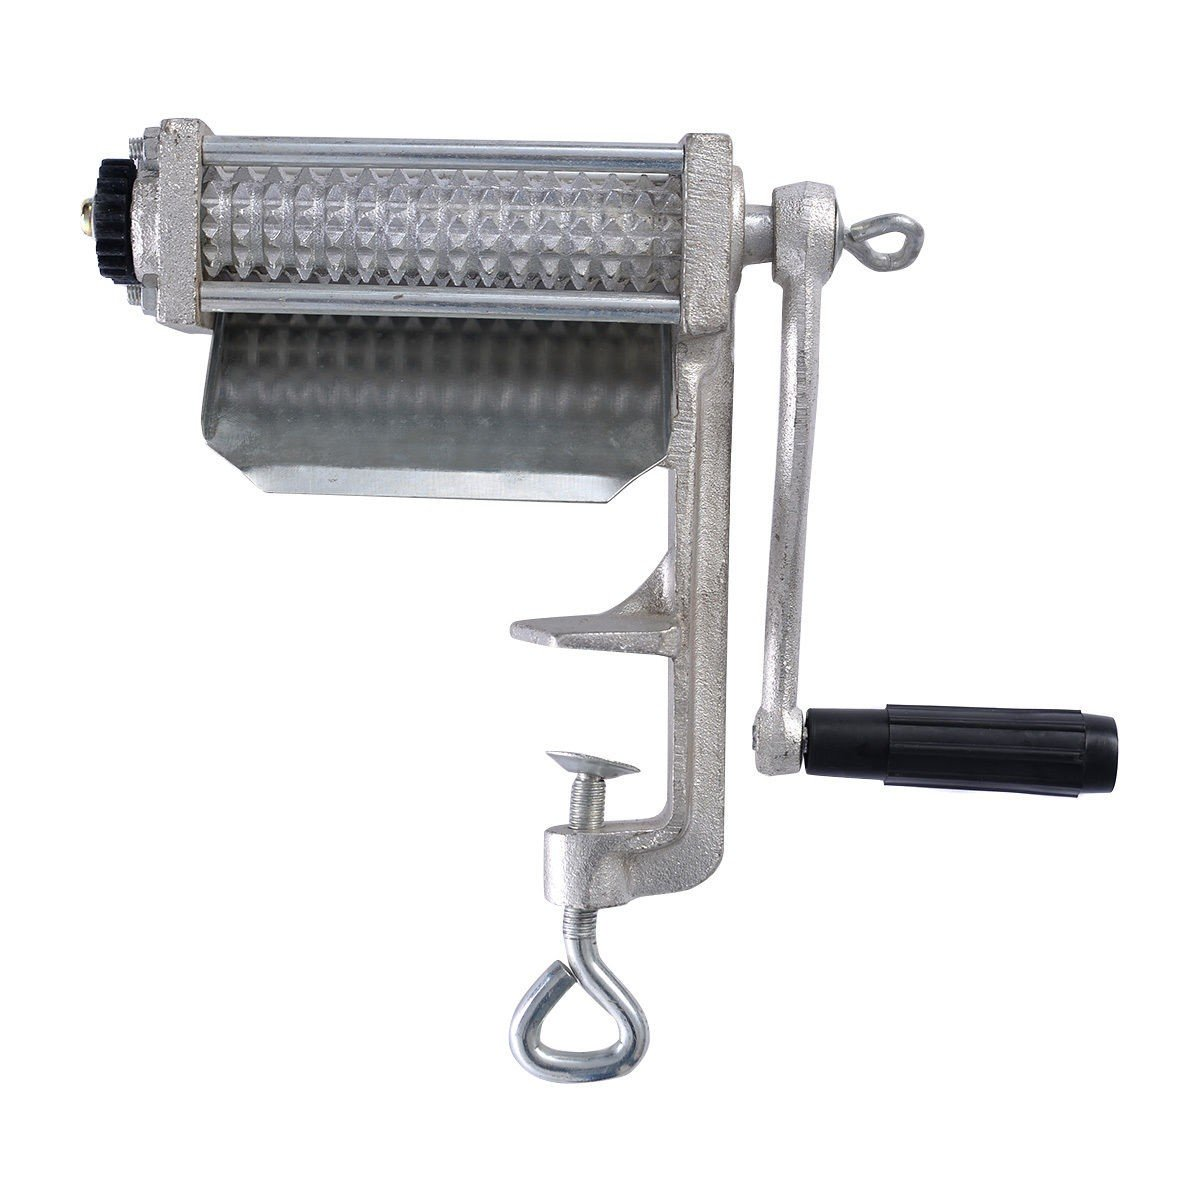 Heavy Duty Meat Tenderizer Cuber Flatten Tenderize Kitchen Restaurant New - By Choice Products by choice